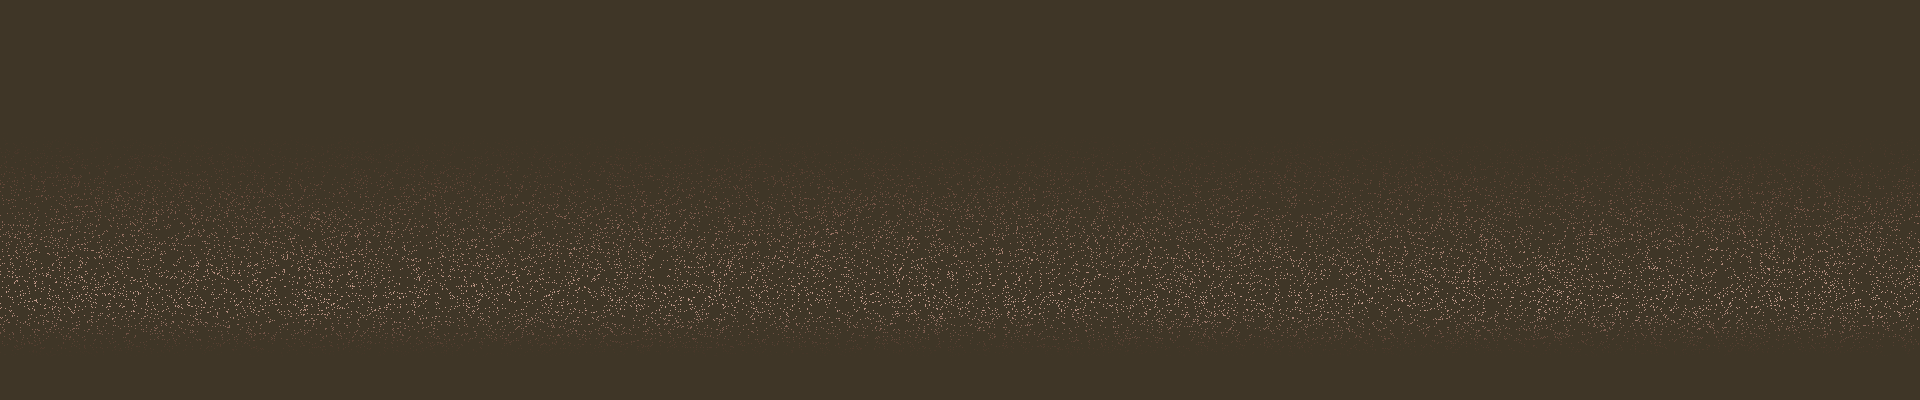 Brown_sand_background.png